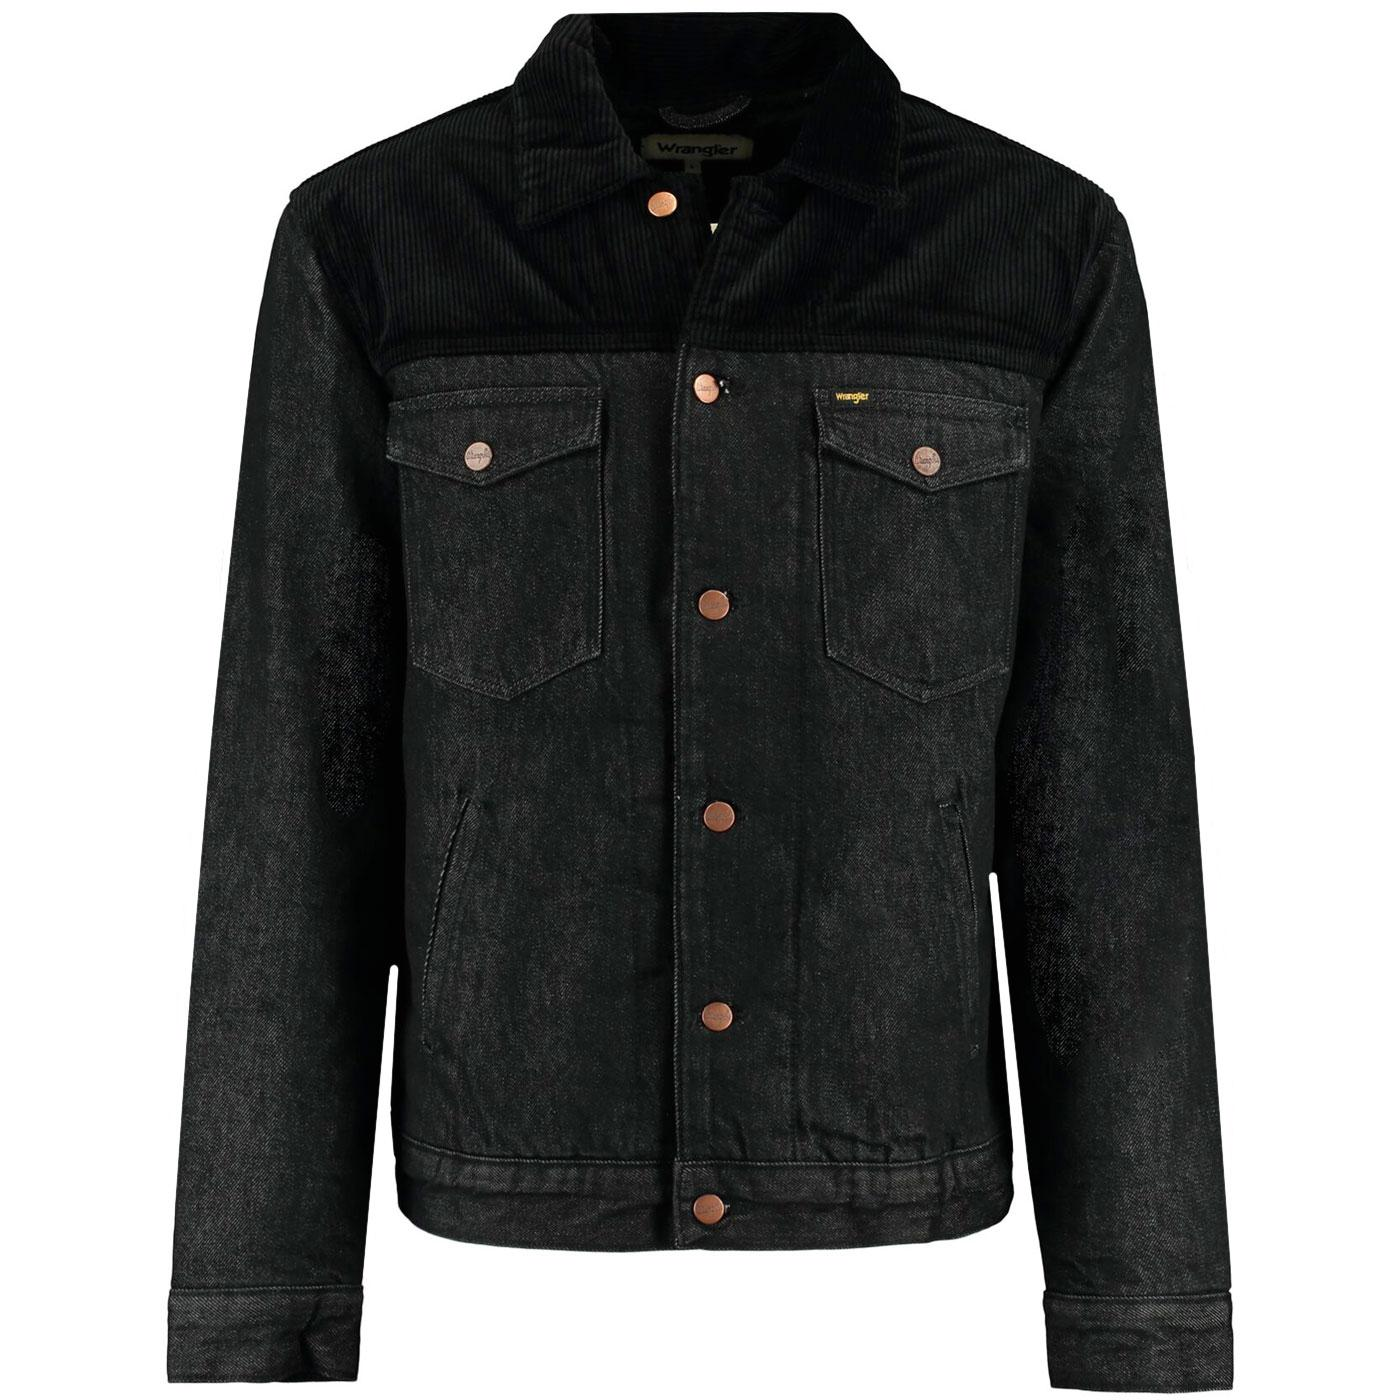 WRANGLER Retro Denim Sherpa Jacket - Black